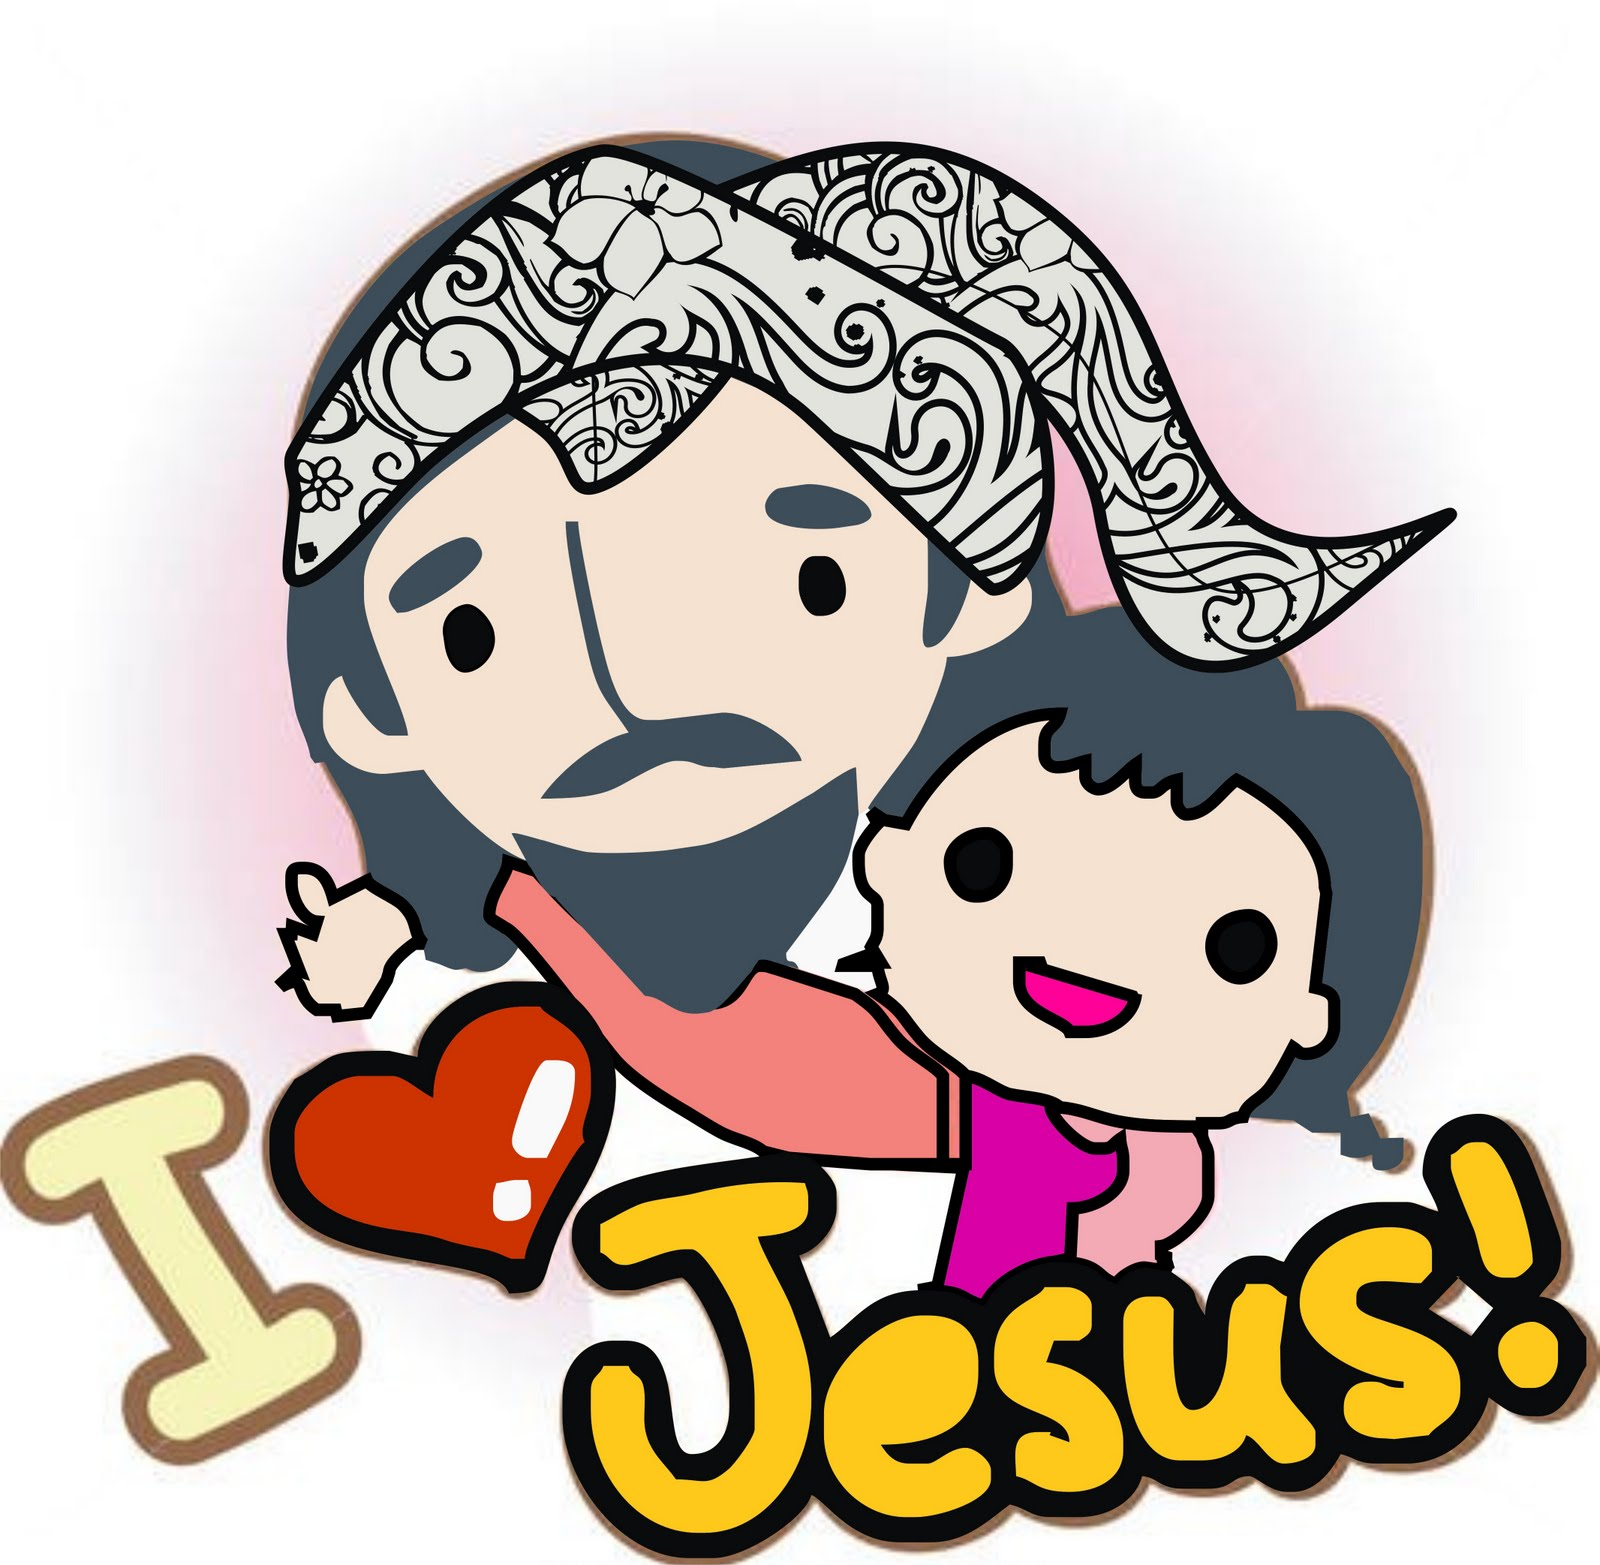 hight resolution of 1600x1565 cool design cartoon clipart jesus free download clip art